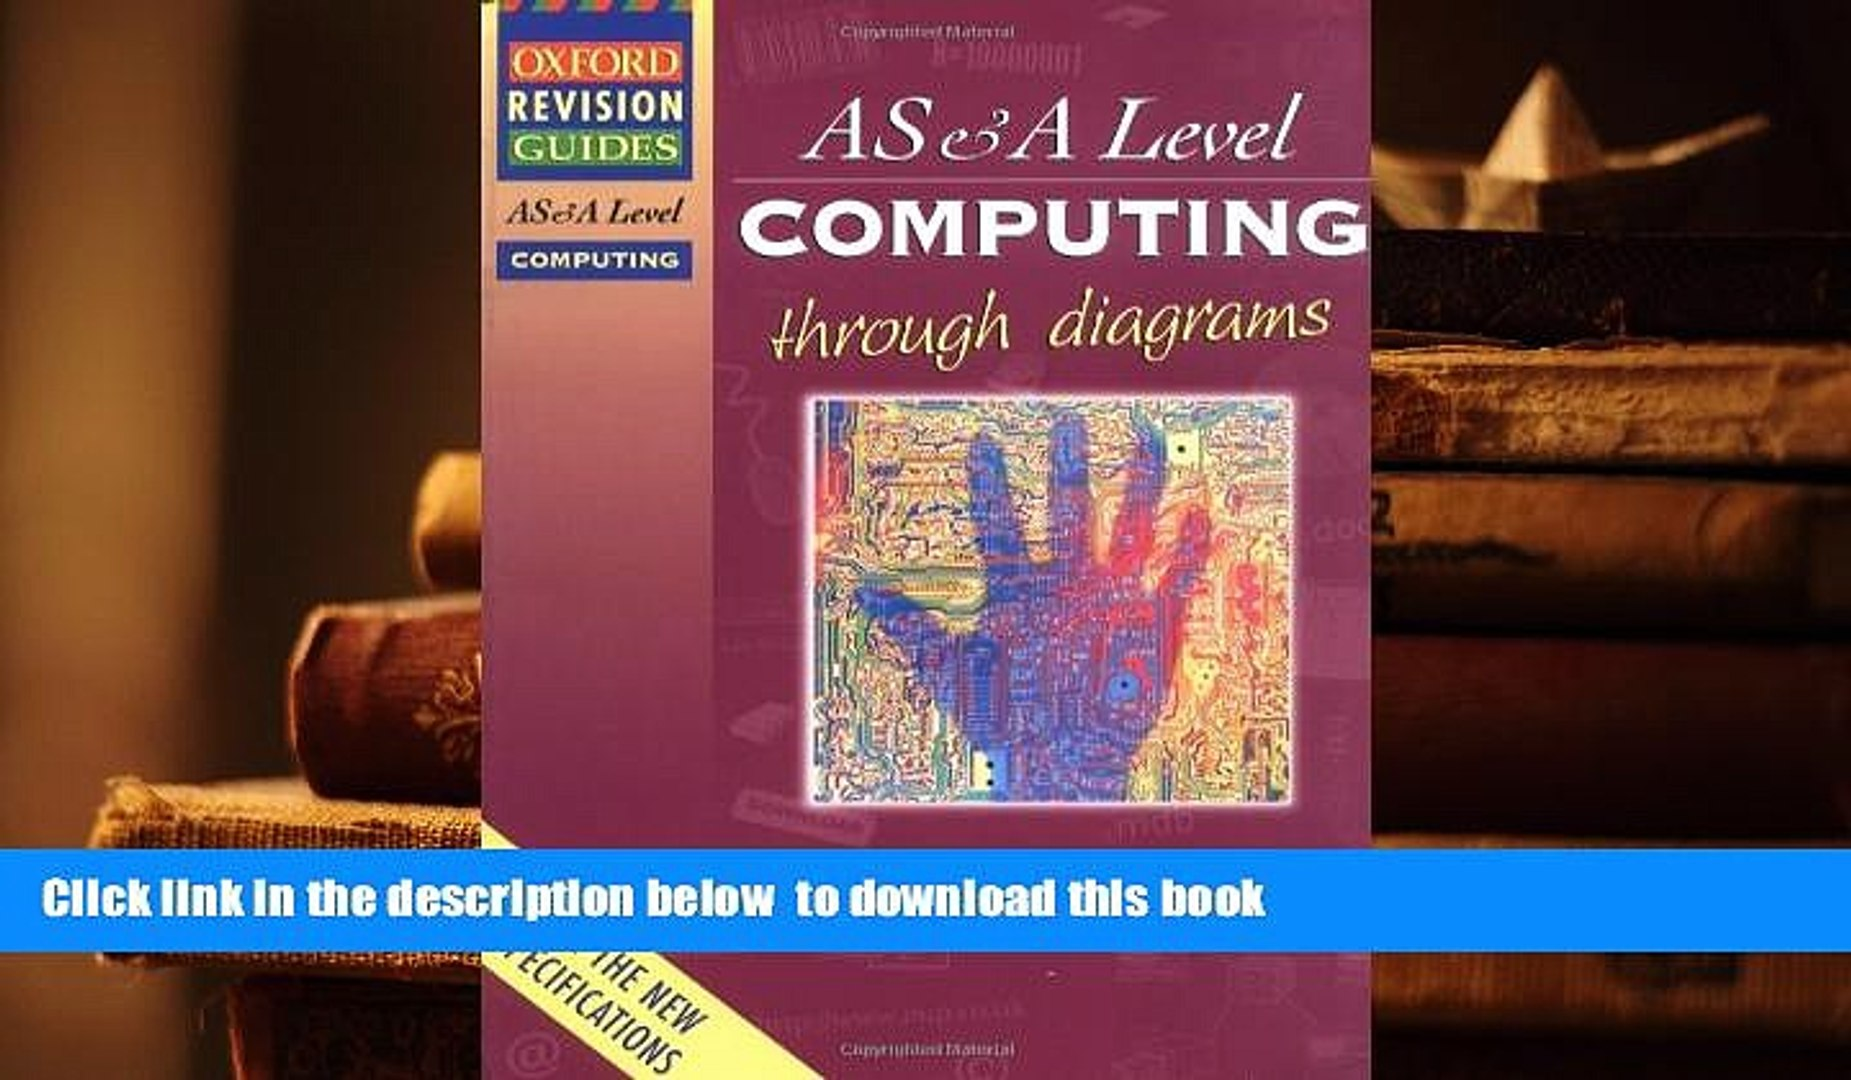 PDF [FREE] DOWNLOAD Advanced Level Computing Through Diagrams (Oxford  Revision Guides) TRIAL EBOOK